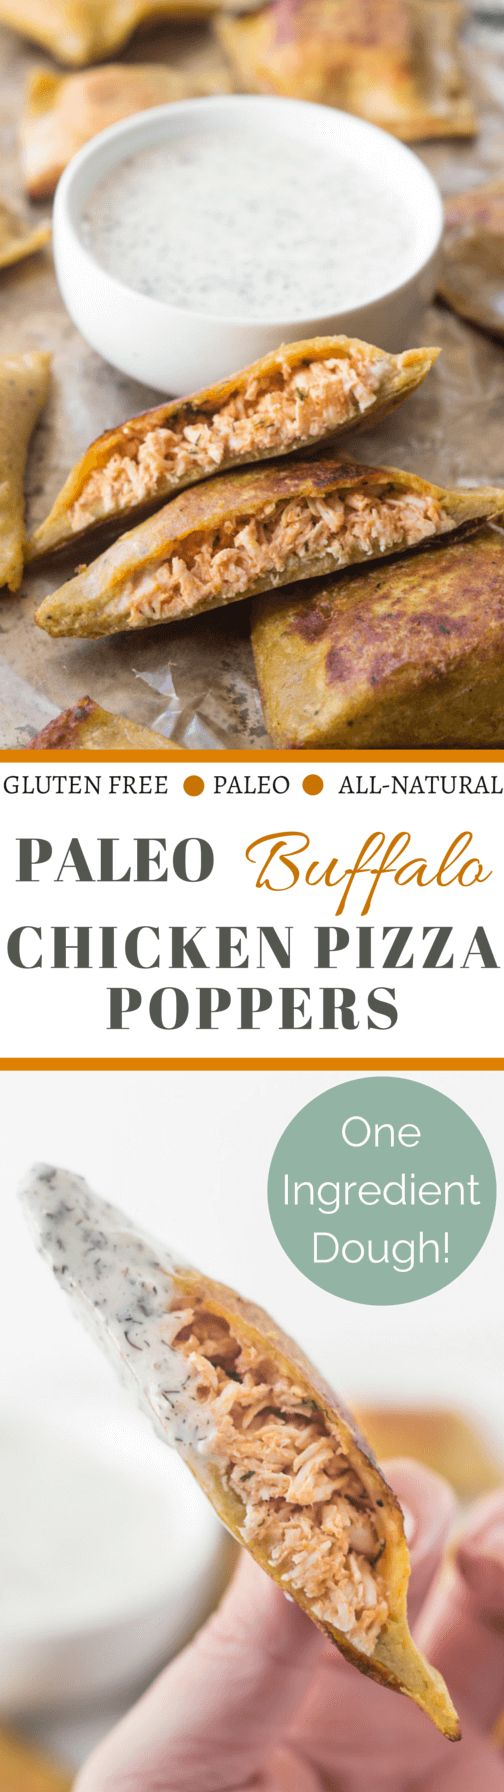 paleo buffalo chicken pizza poppers